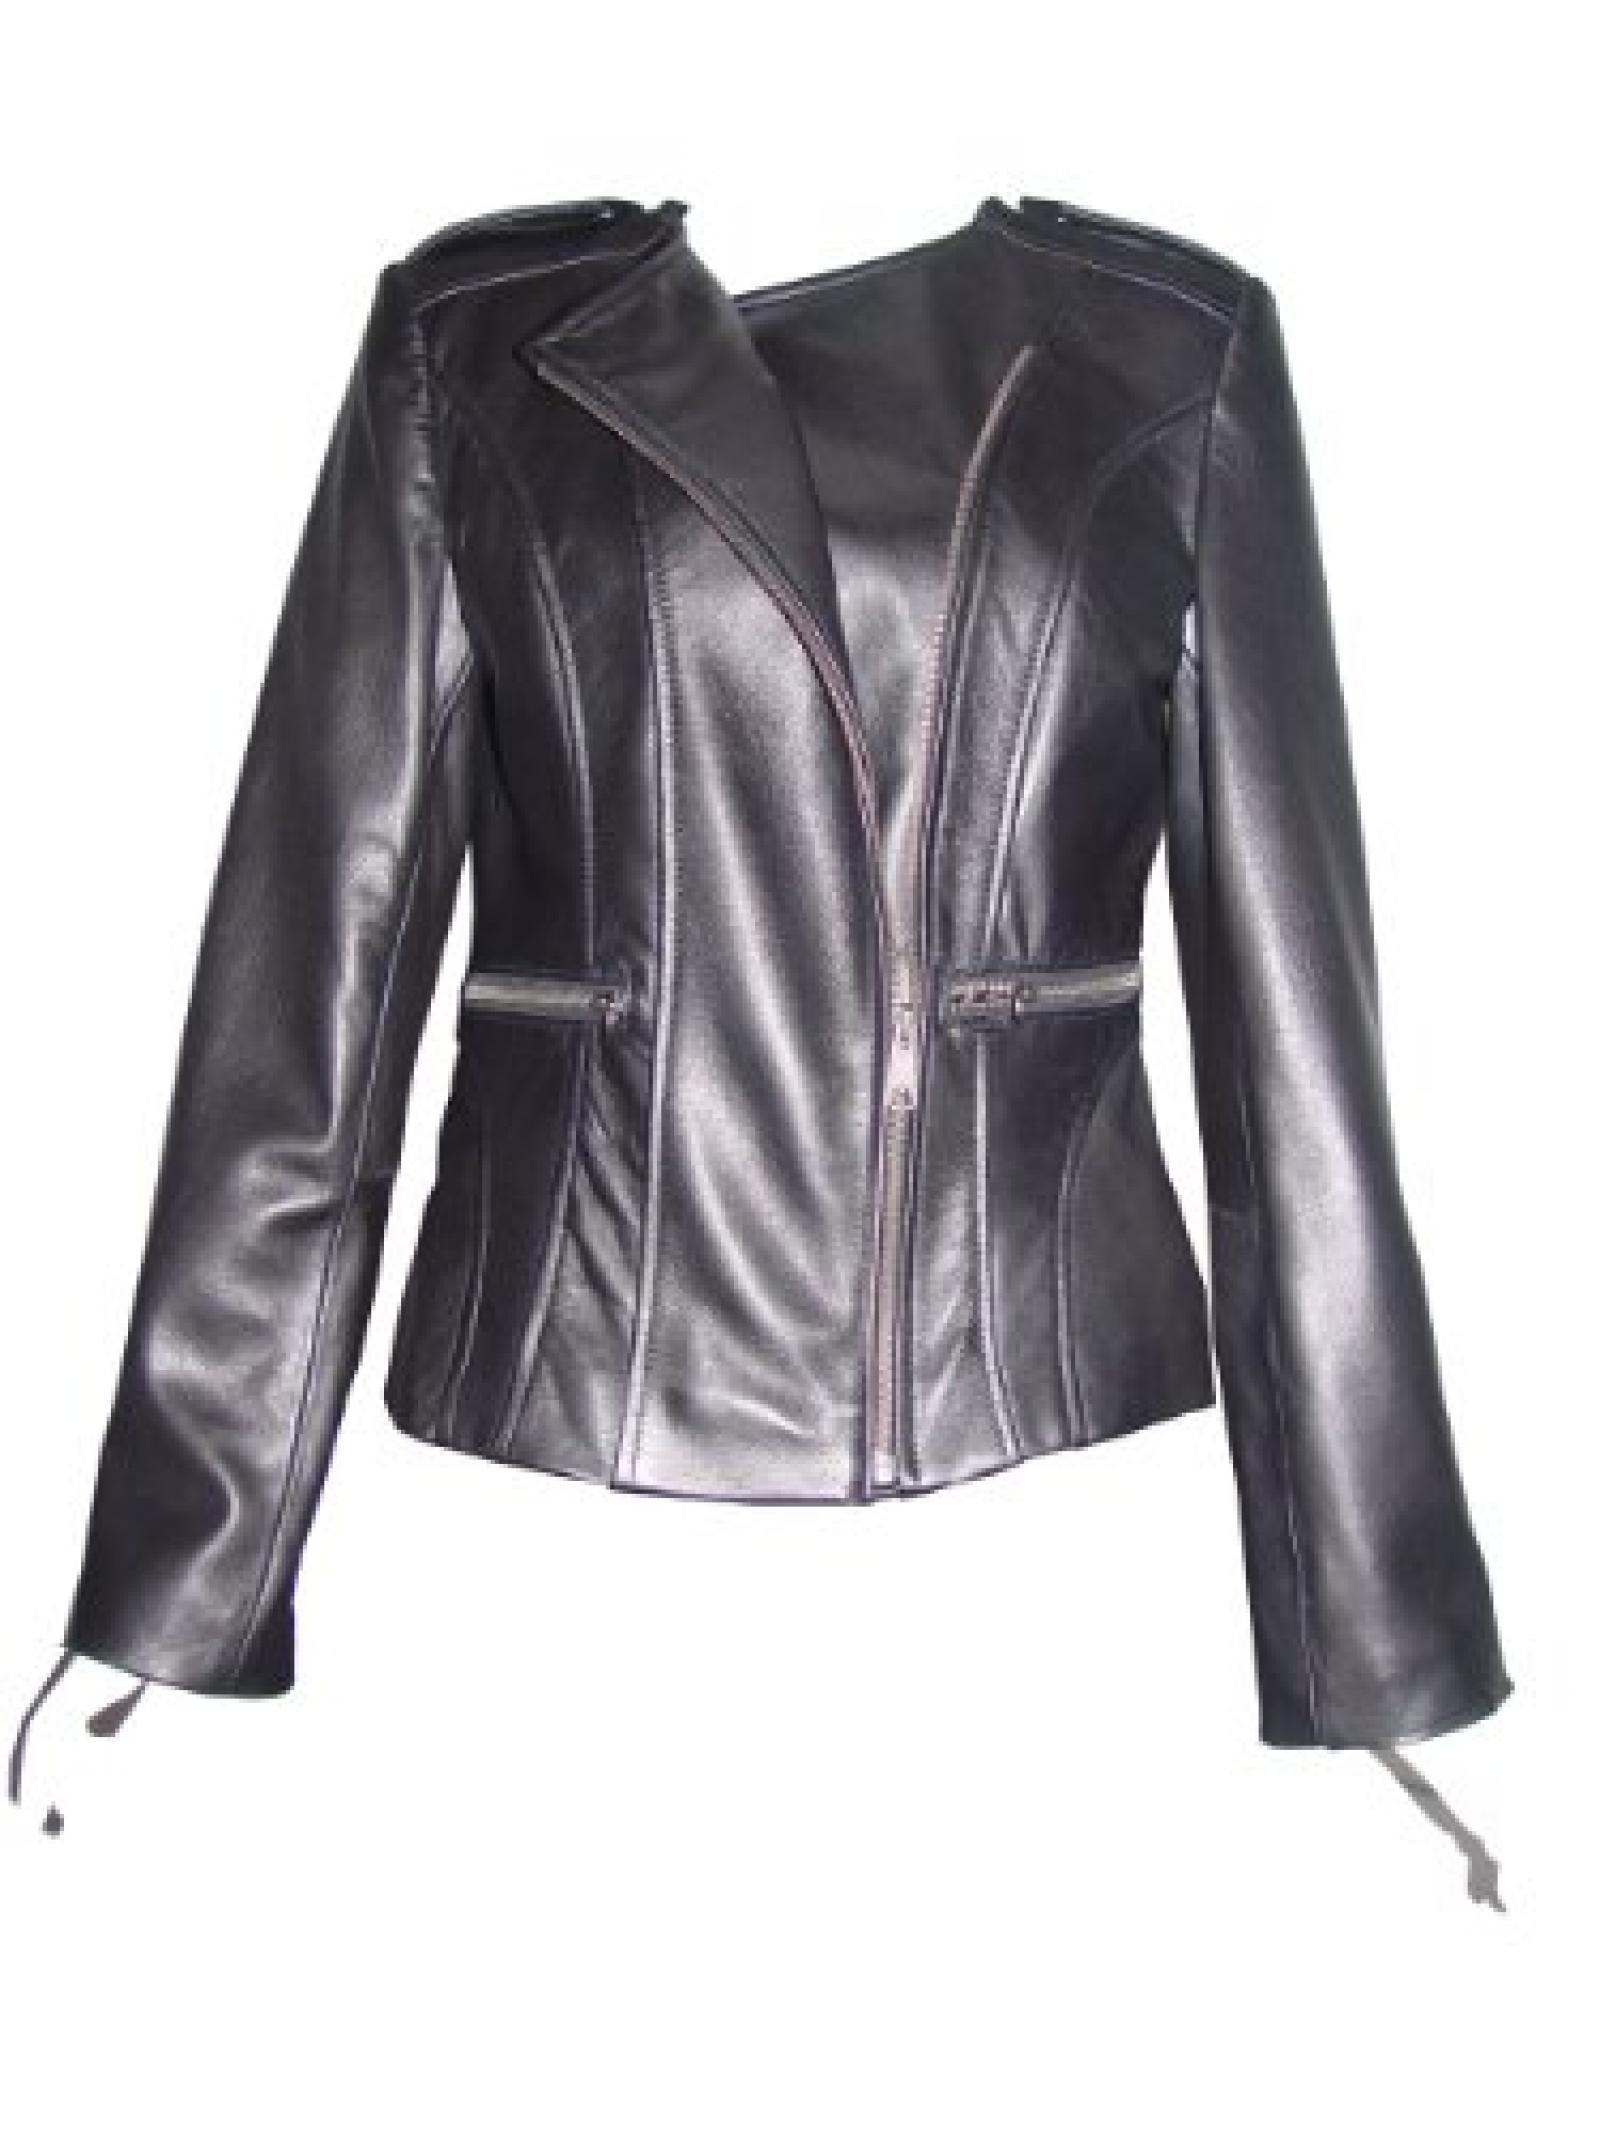 Nettailor FREE tailoring Women 4069 Leather Moto Jacket Collarless